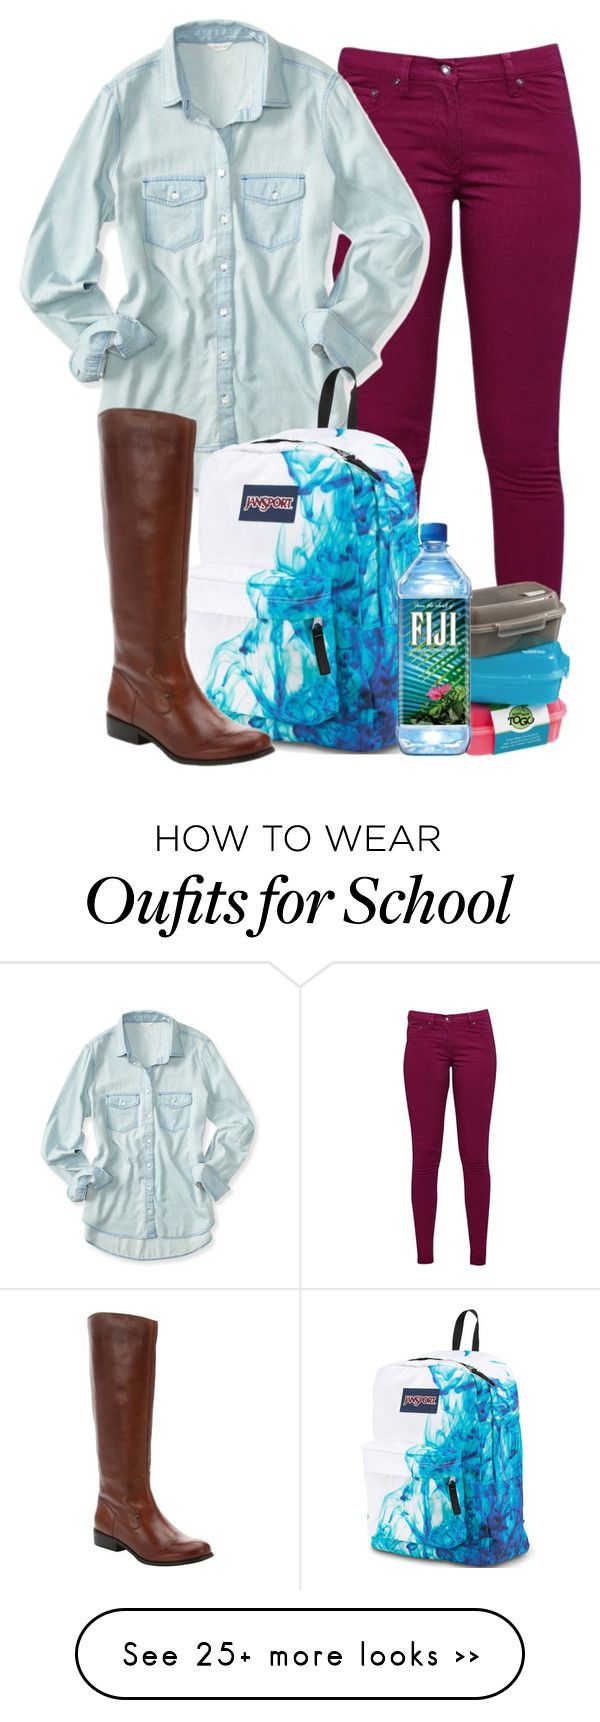 """Exact OOTD for School!"" by red-velvet-n-pearls on Polyvore featuring Great Plains, Aéropostale, JanSport and Ciao Bella"